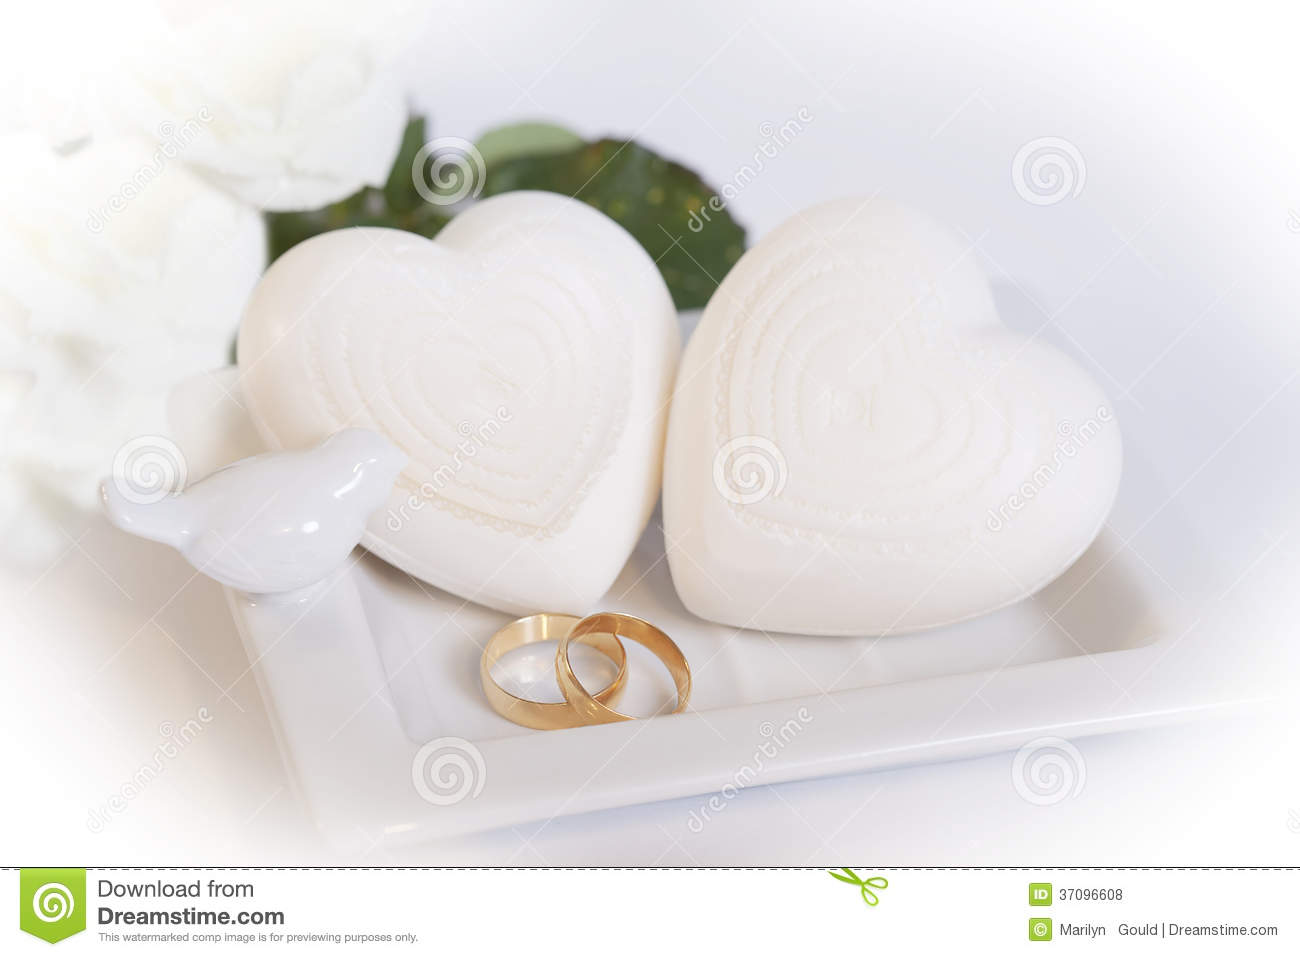 Two Gold Wedding Bands and Hearts